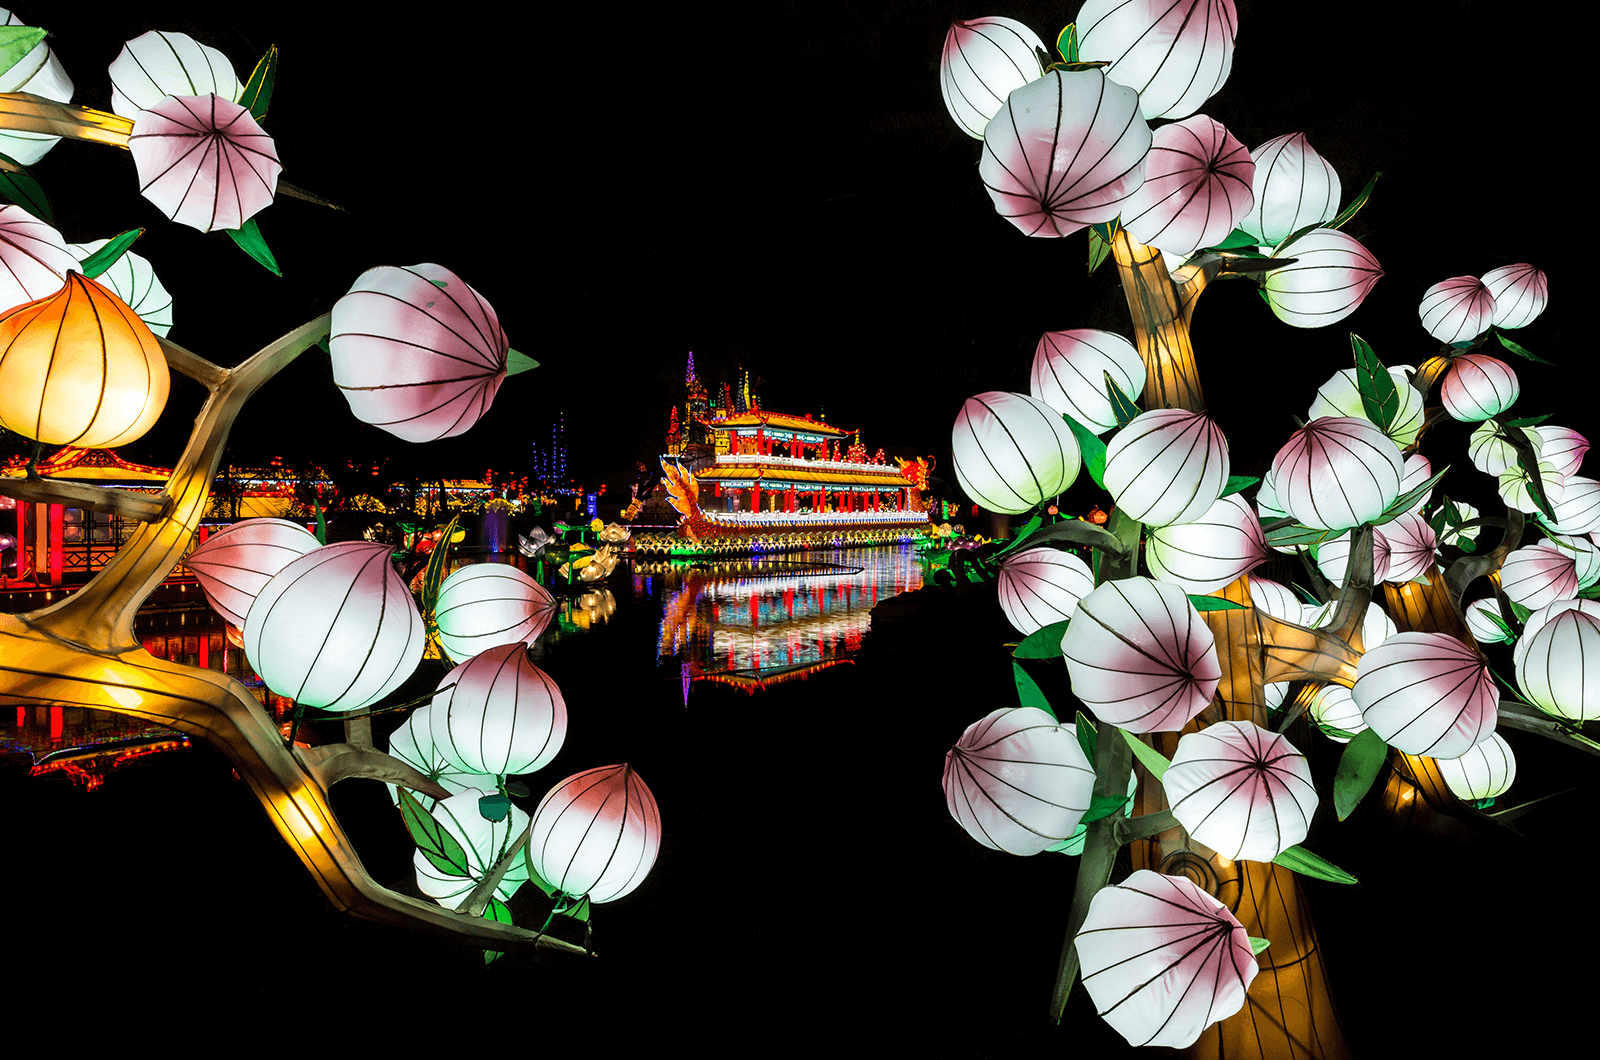 Framed image with lit up dragon boat in background